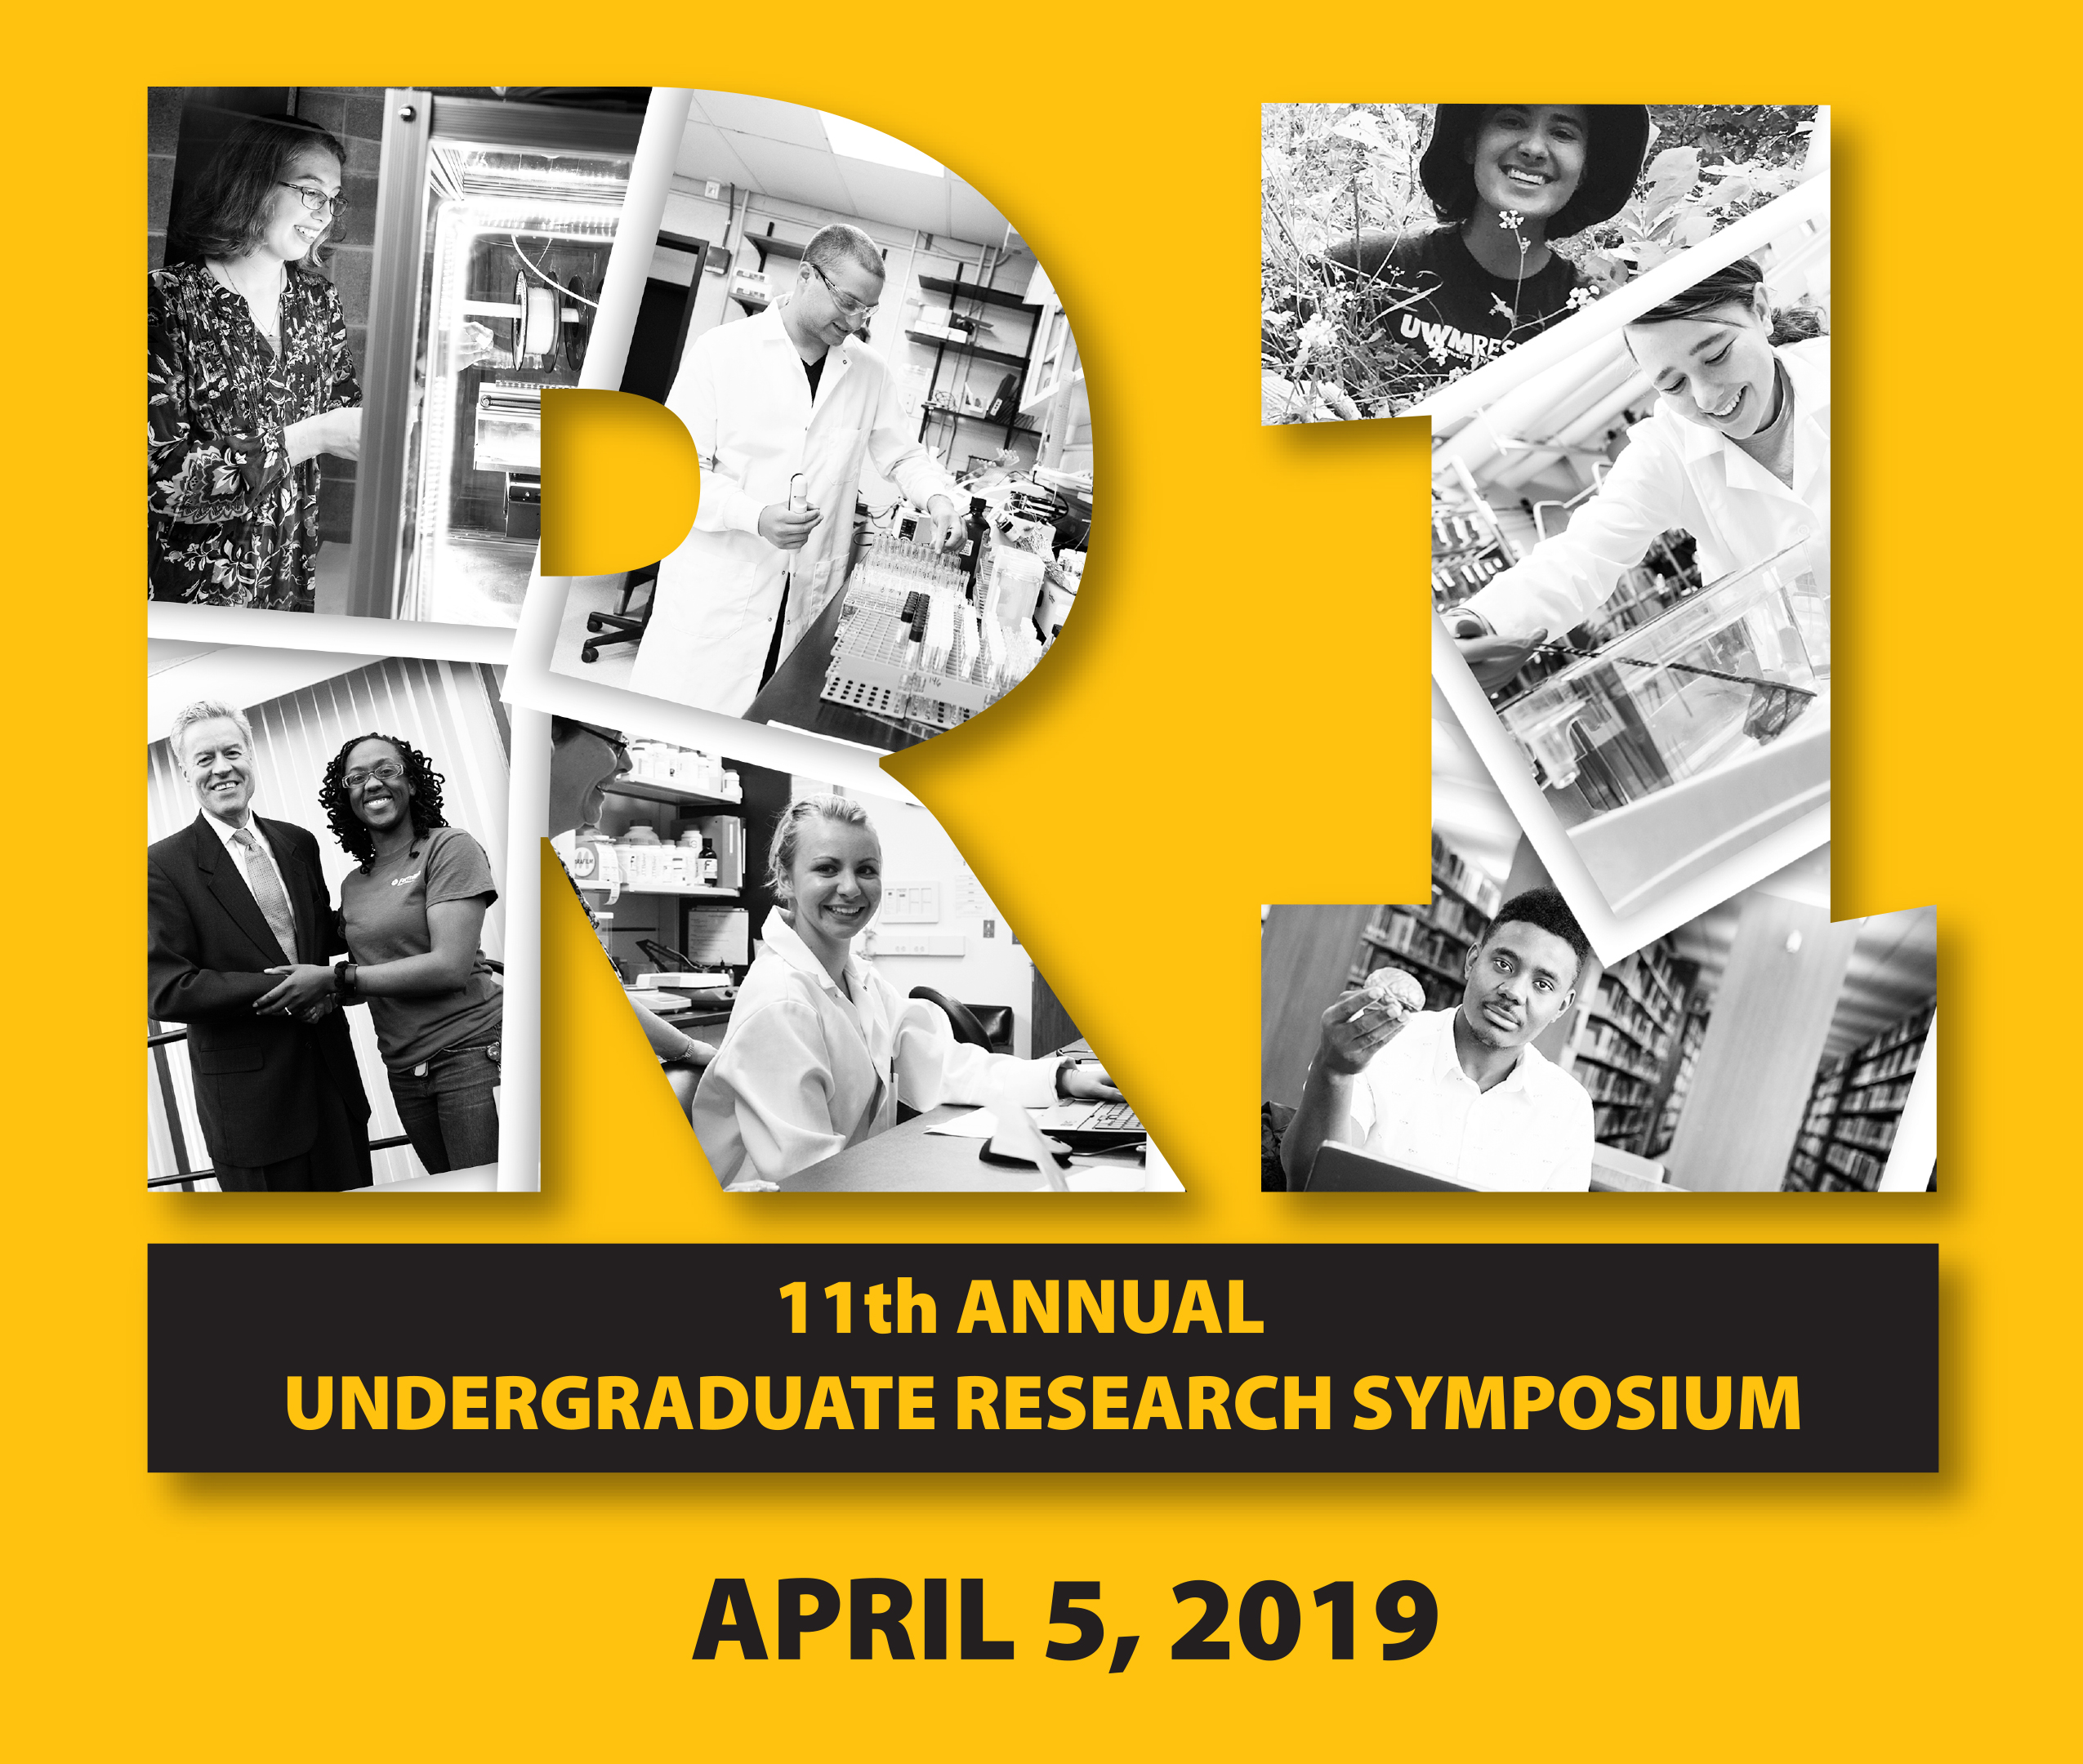 UWM Undergraduate Research Symposium, 2019